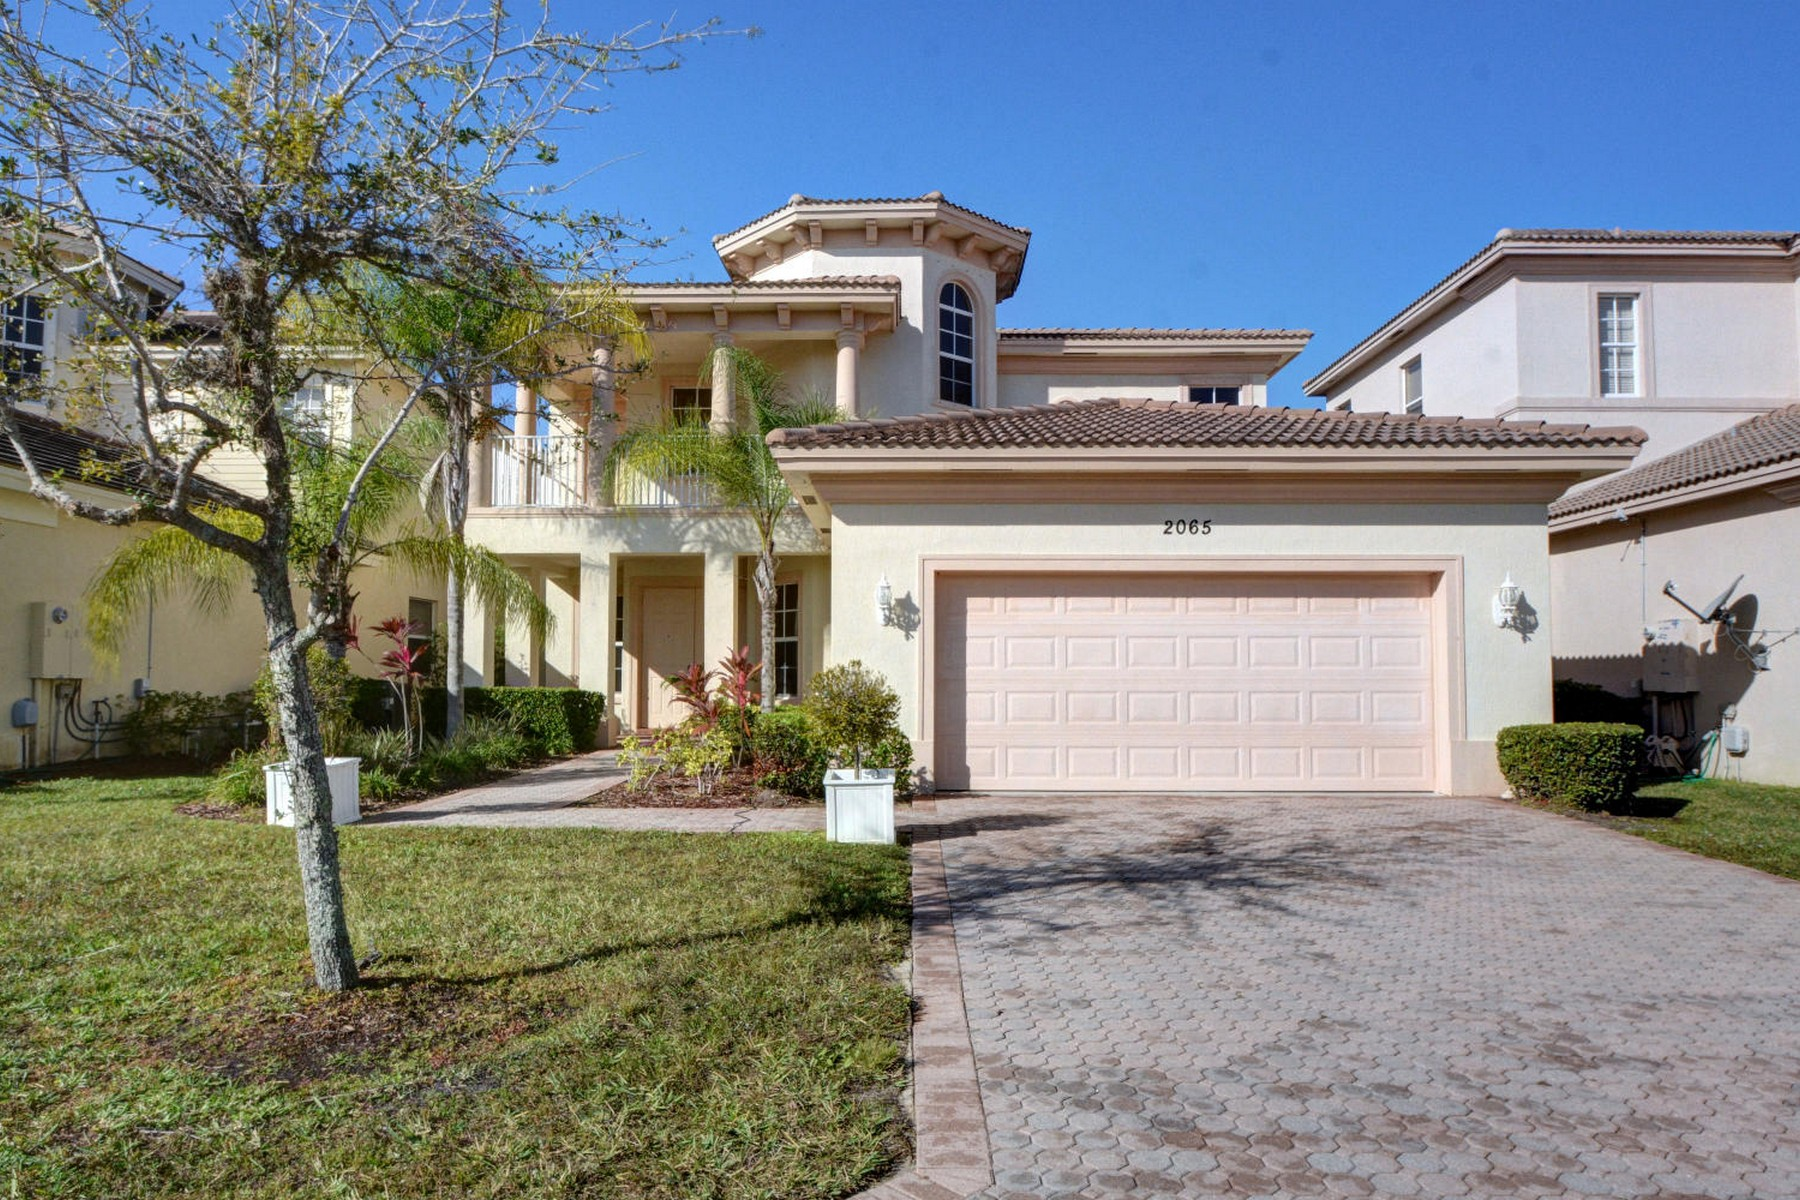 Single Family Home for Sale at Fantastic Two Story Four Bedroom Home in Great Family Community 2065 Plainfield Dr SW Vero Beach, Florida 32968 United States